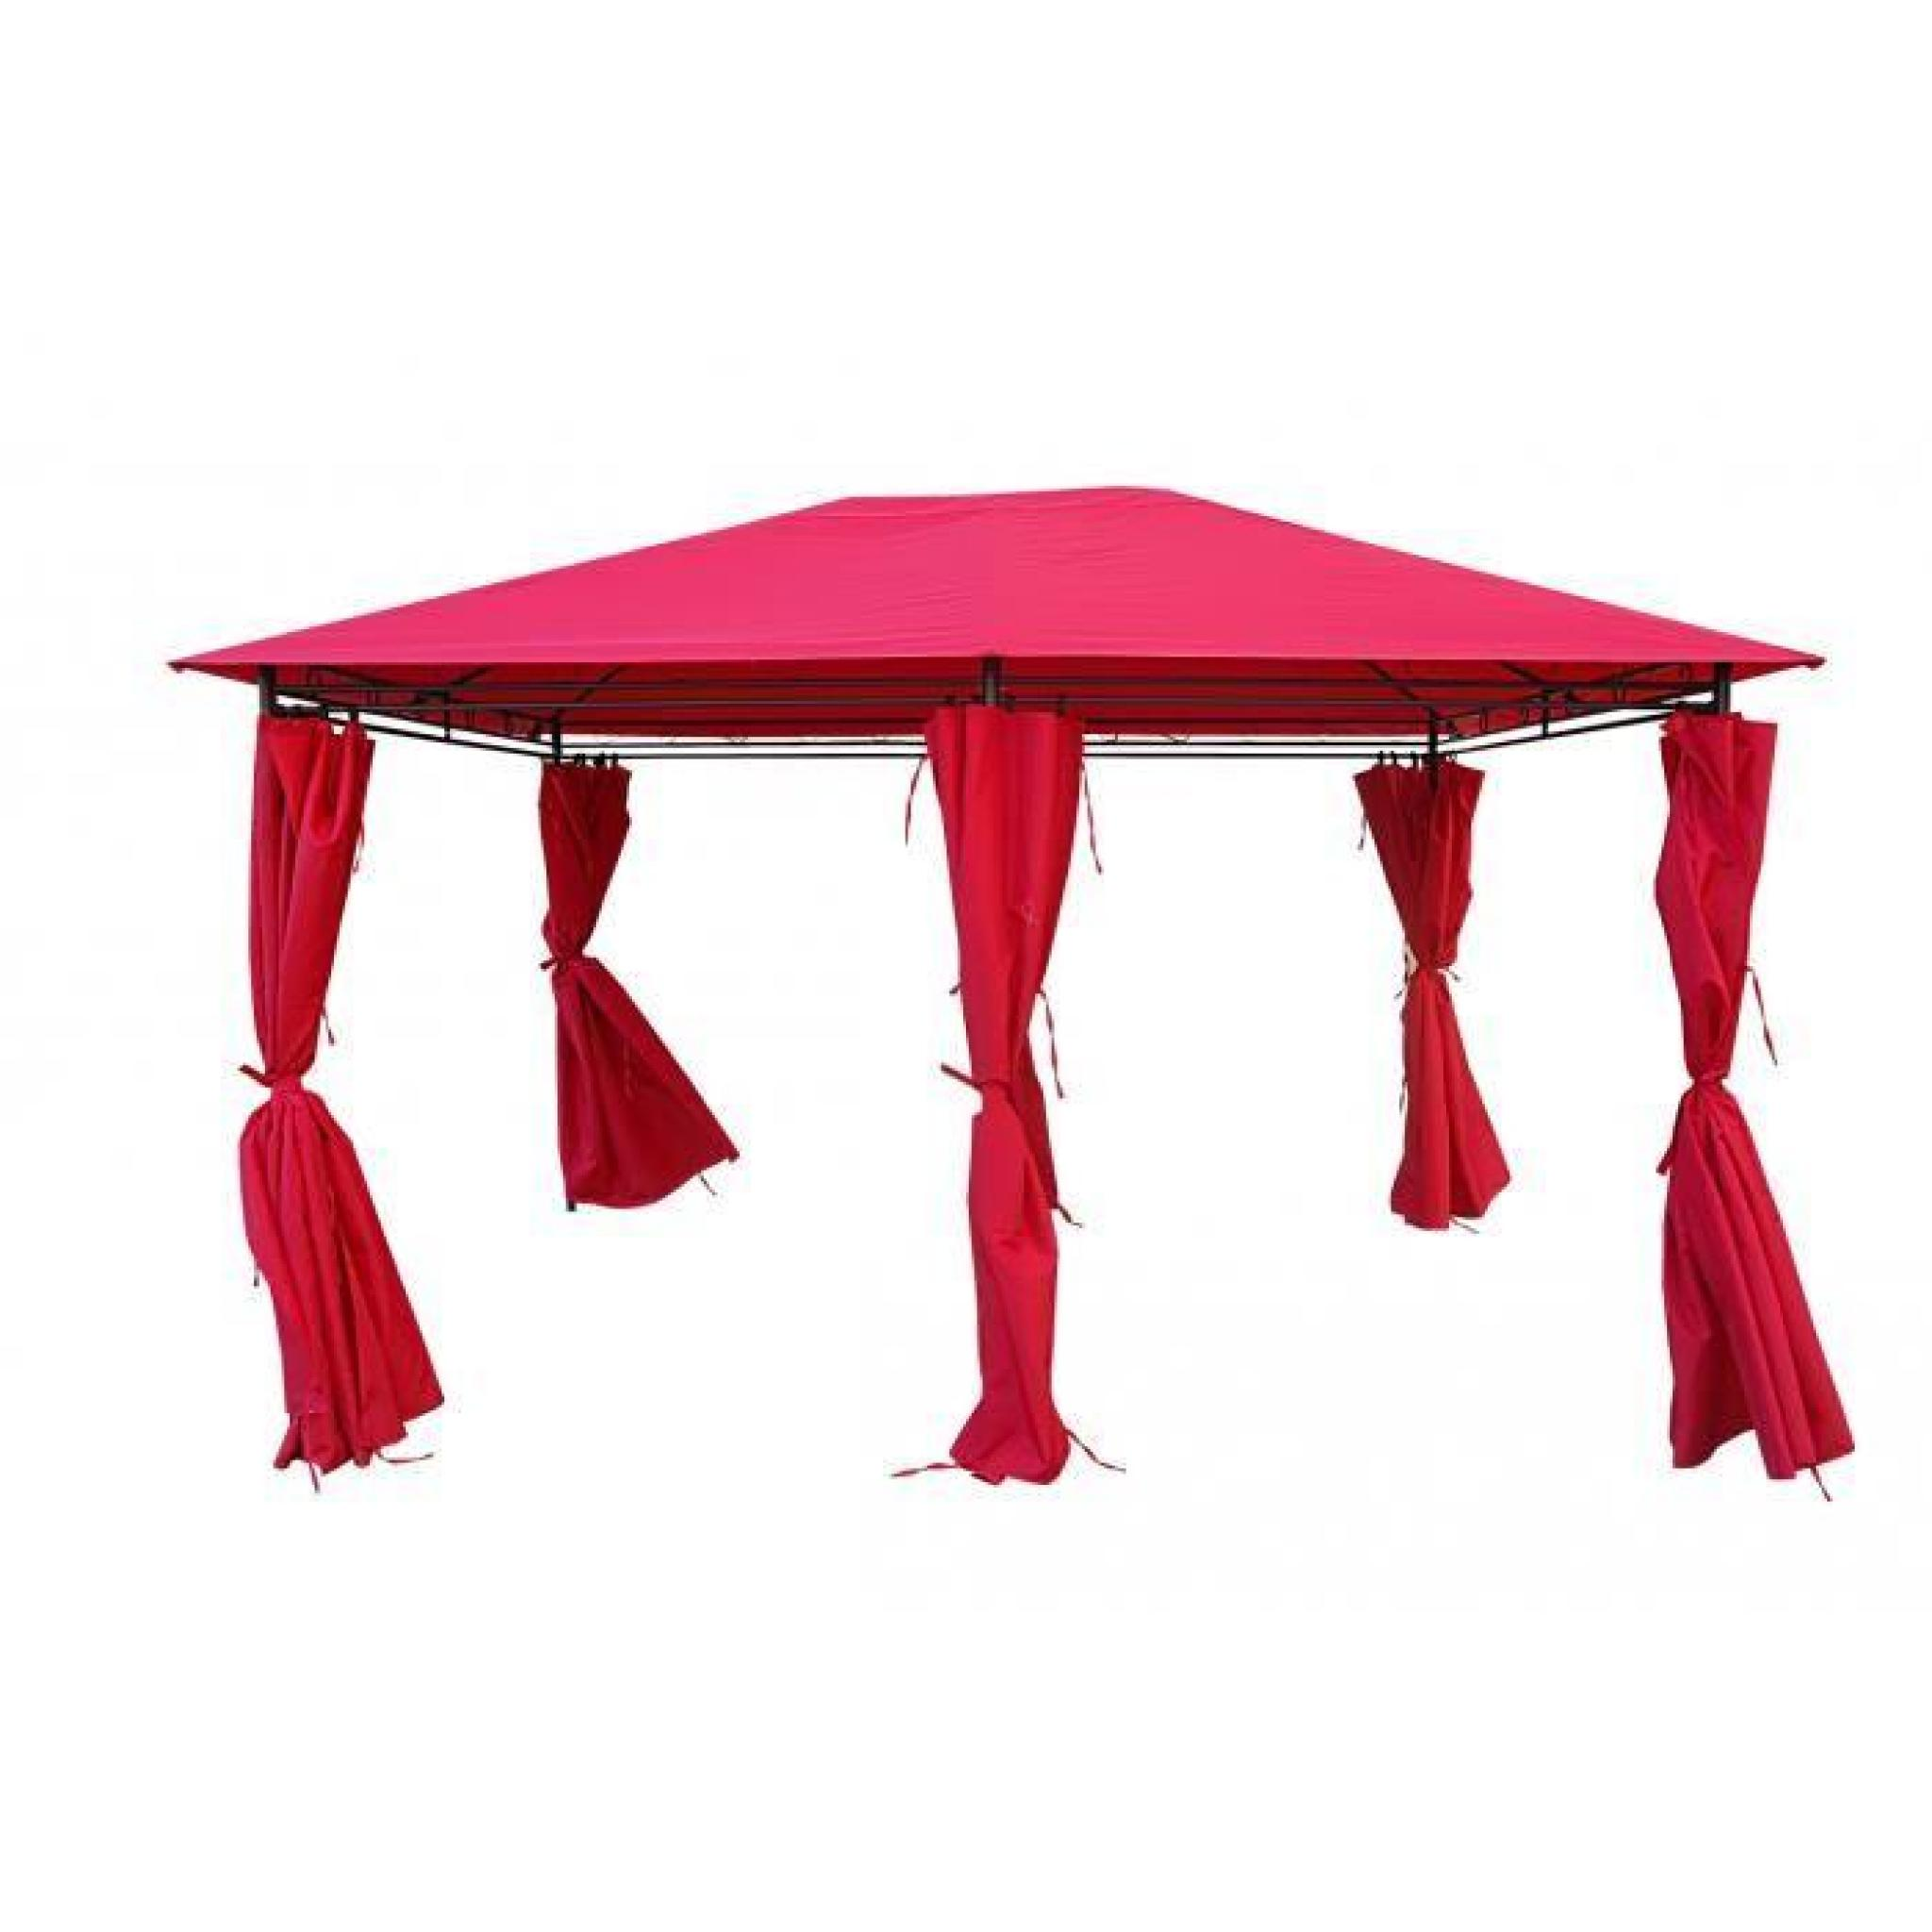 kaligagan tente de jardin pergola 3x4m rouge tonnelle barnum achat vente tonnelle en acier. Black Bedroom Furniture Sets. Home Design Ideas